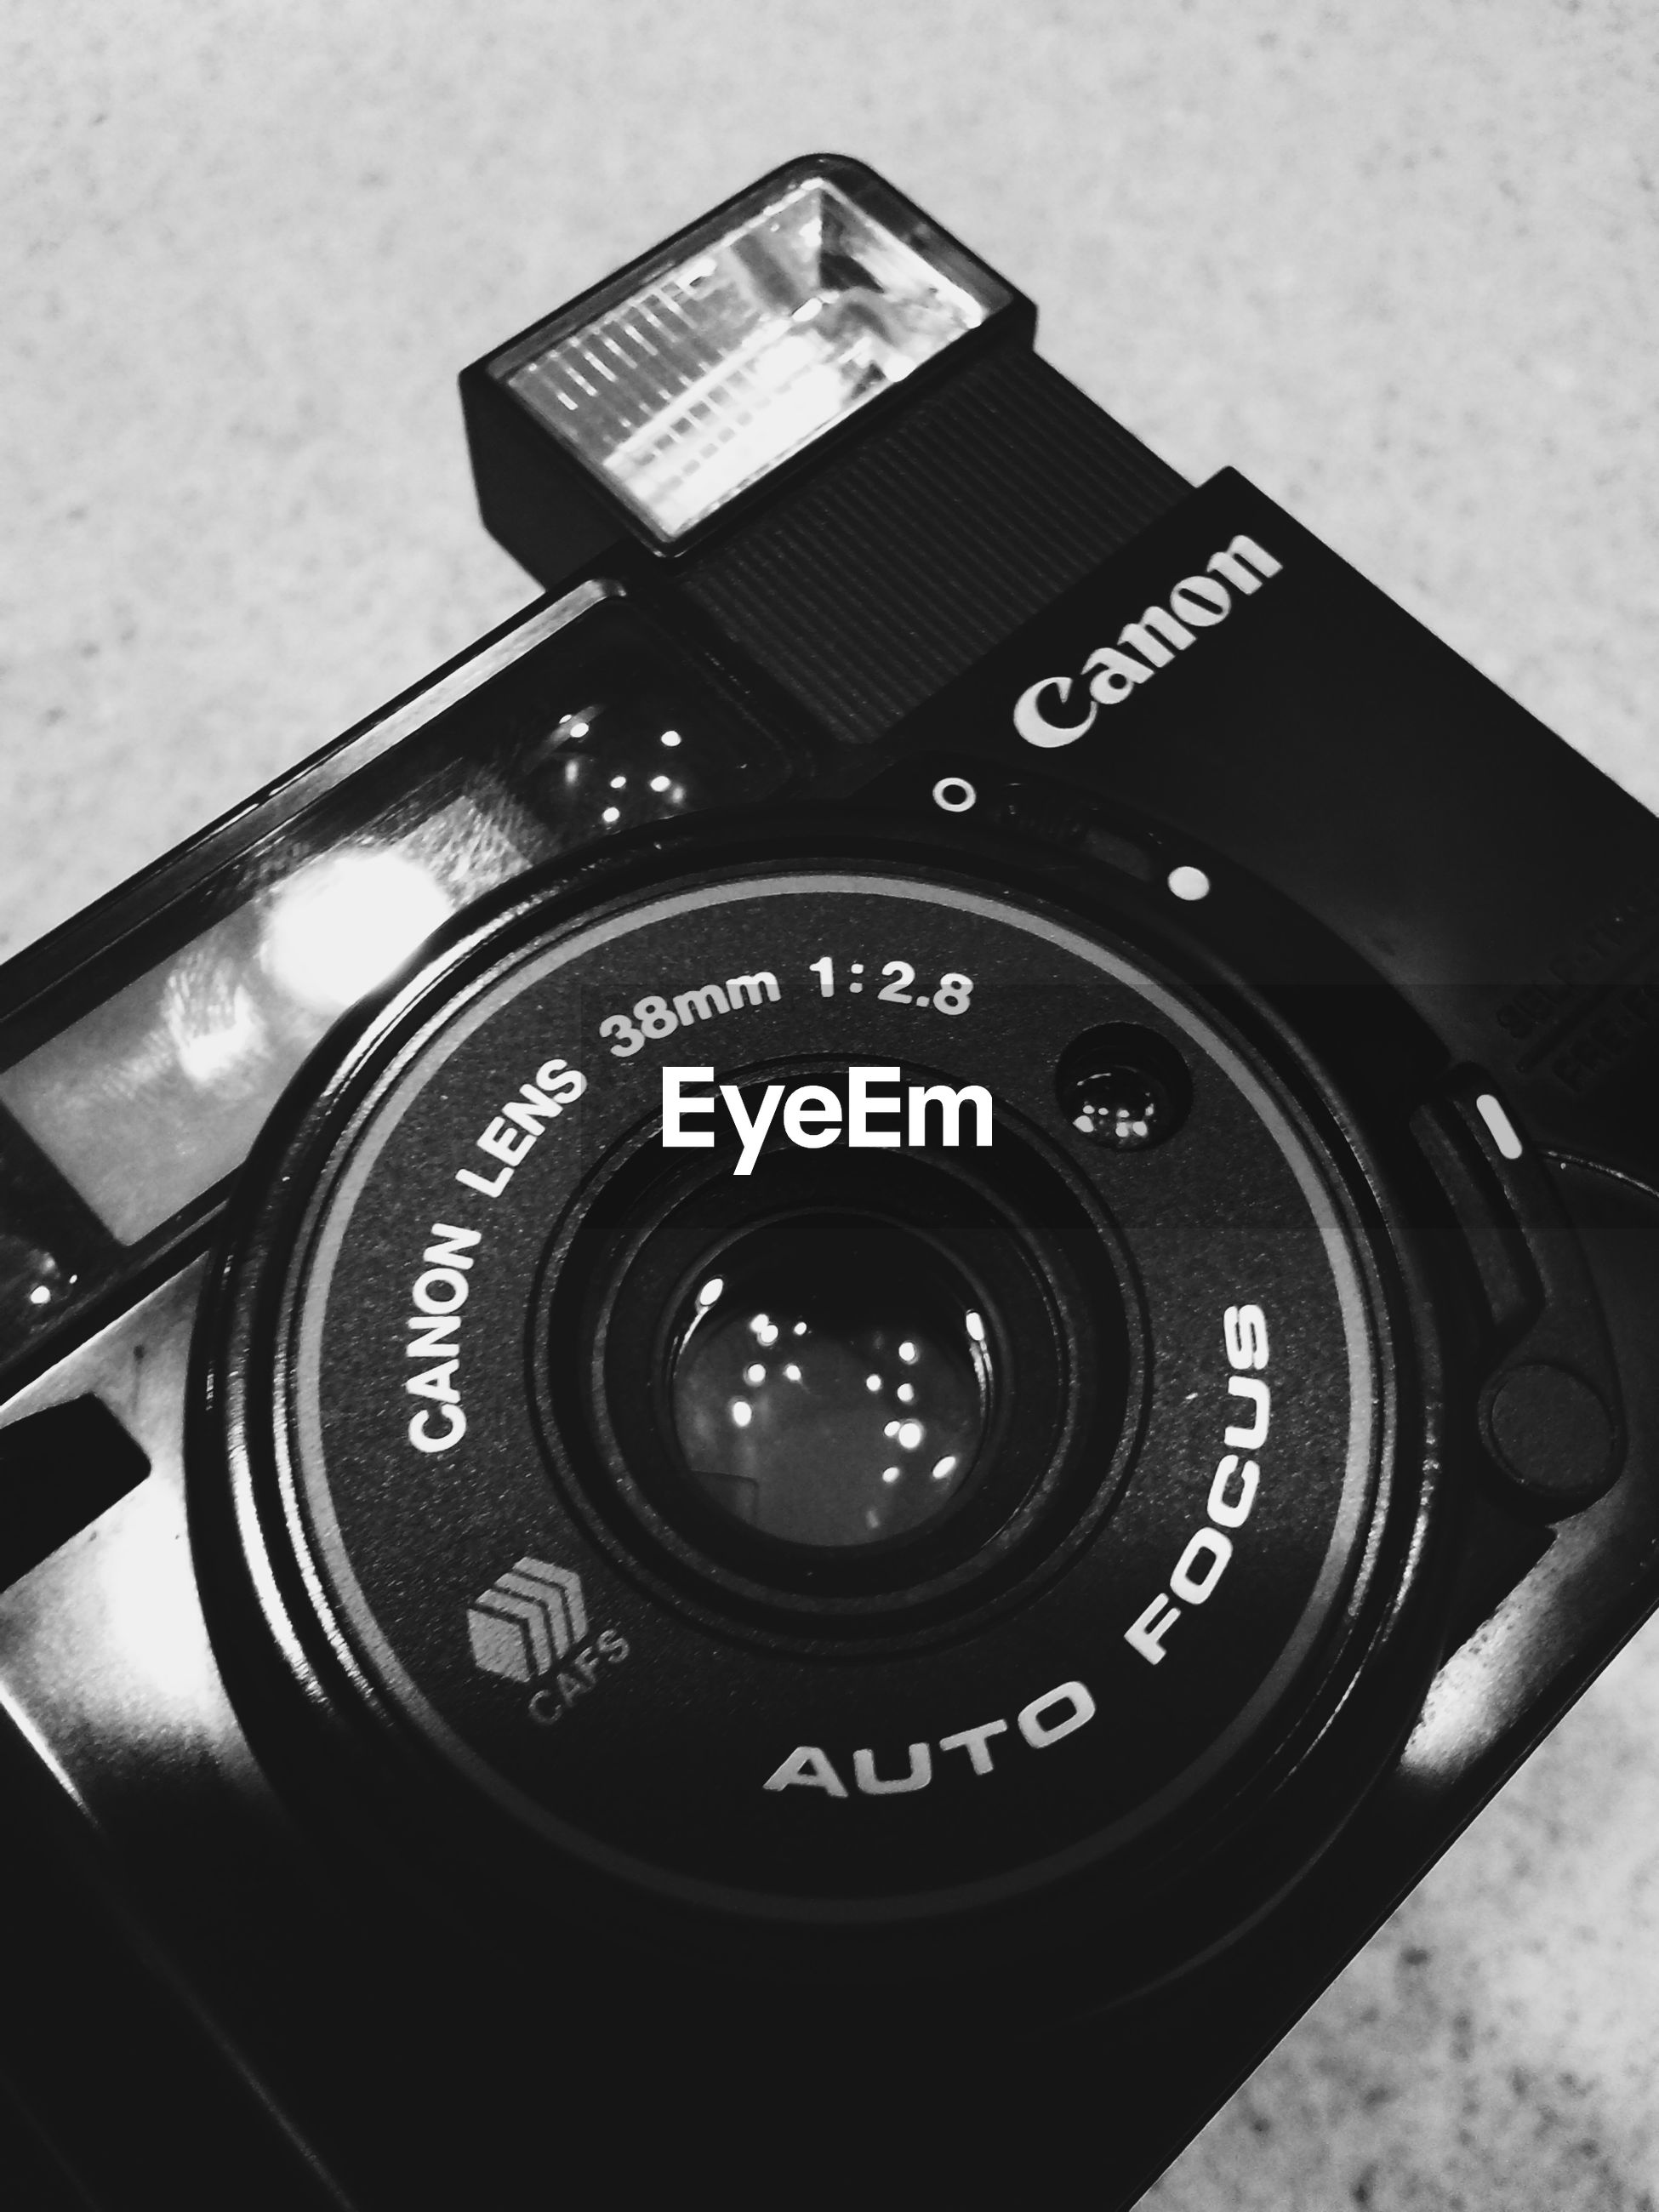 technology, photography themes, indoors, camera - photographic equipment, close-up, retro styled, old-fashioned, communication, lens - optical instrument, digital camera, wireless technology, photographing, number, time, equipment, vintage, single object, antique, telephone, connection